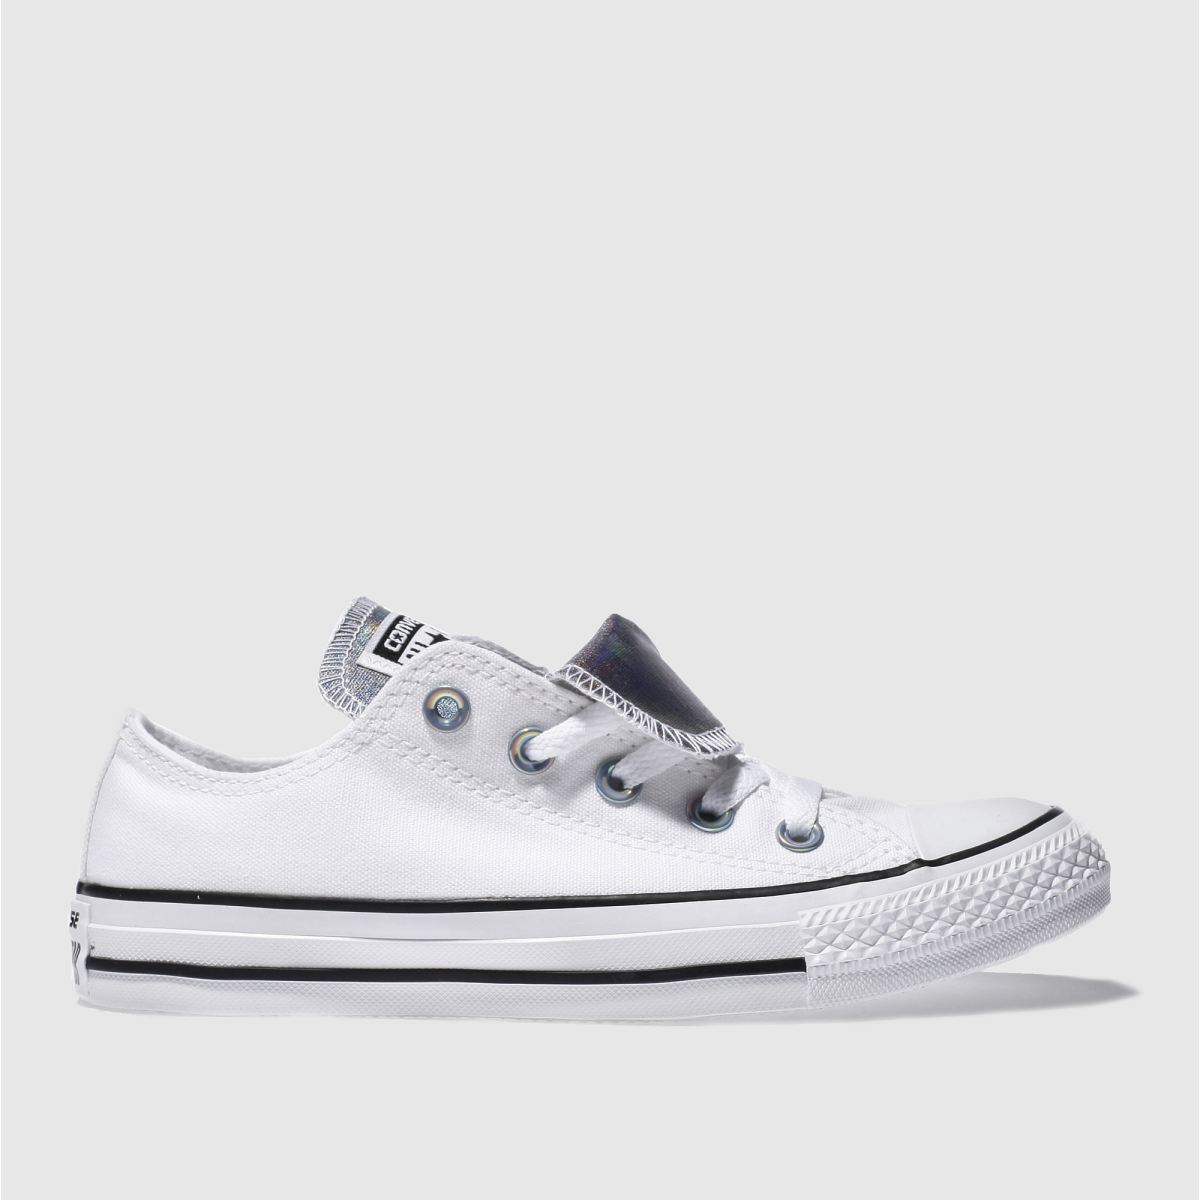 converse white double tongue iridescent trainers